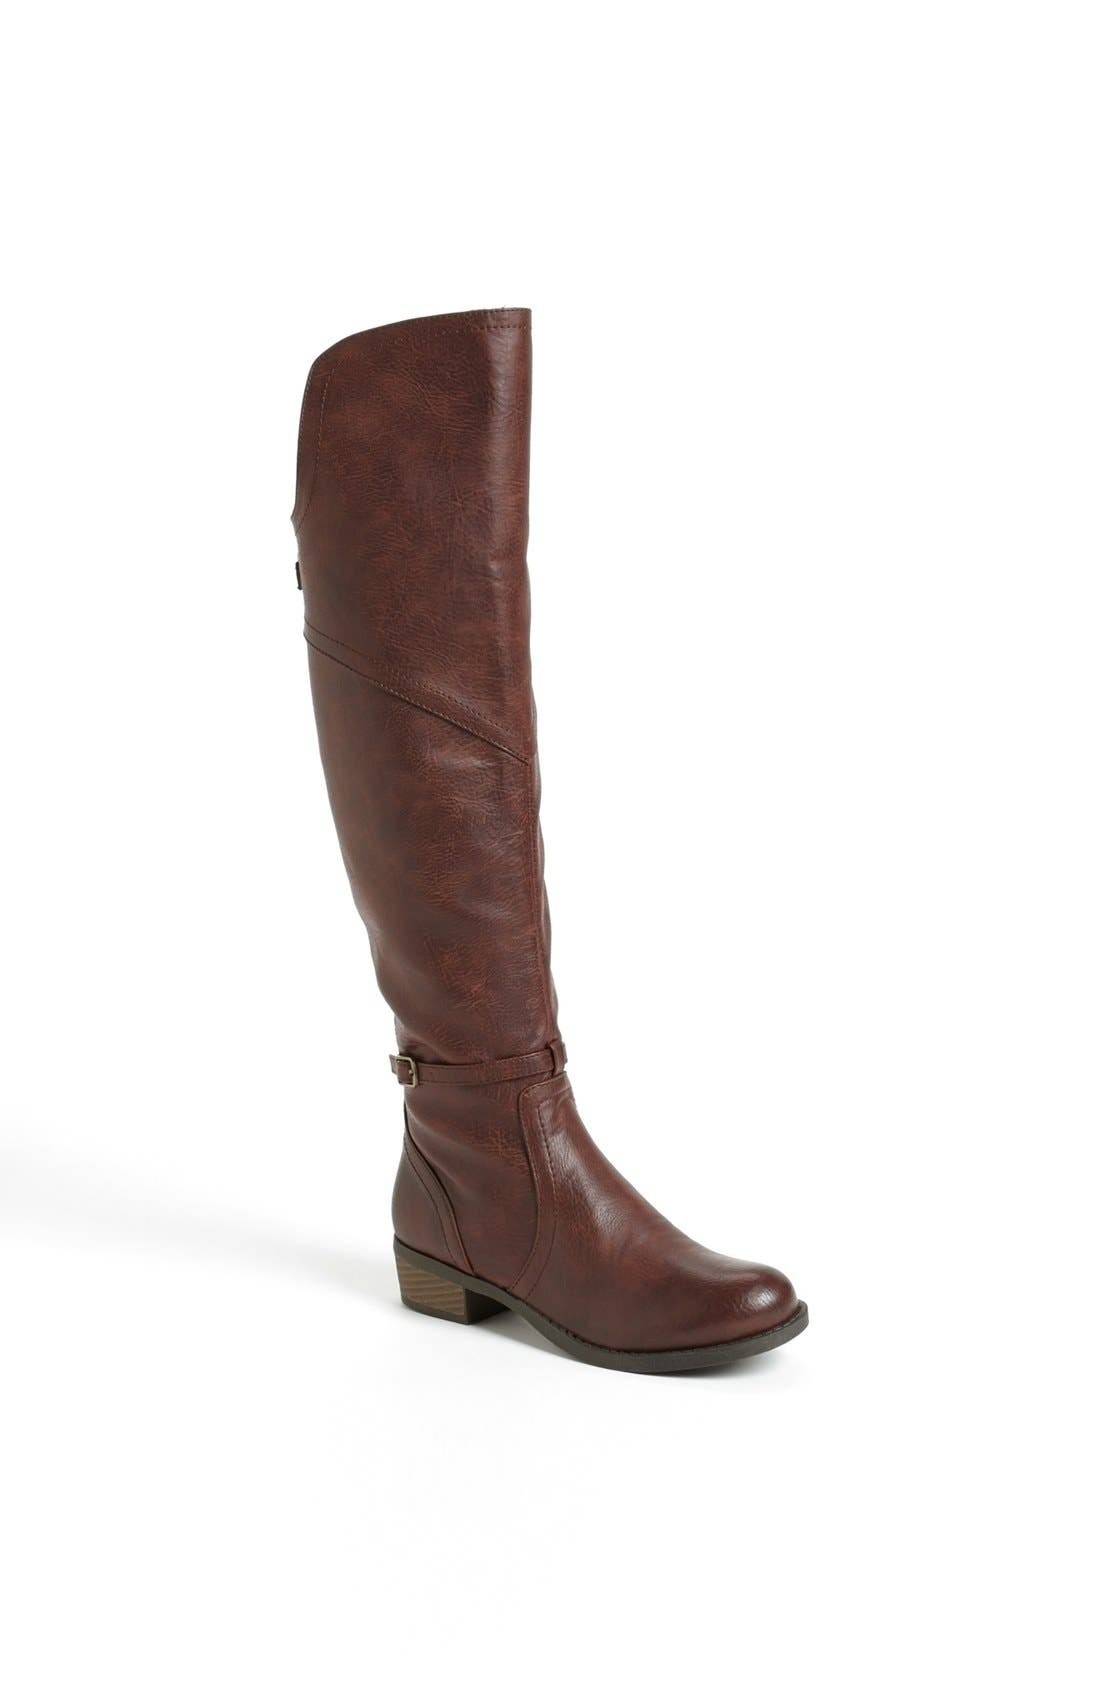 Alternate Image 1 Selected - BC Footwear 'Take Five' Over the Knee Boot